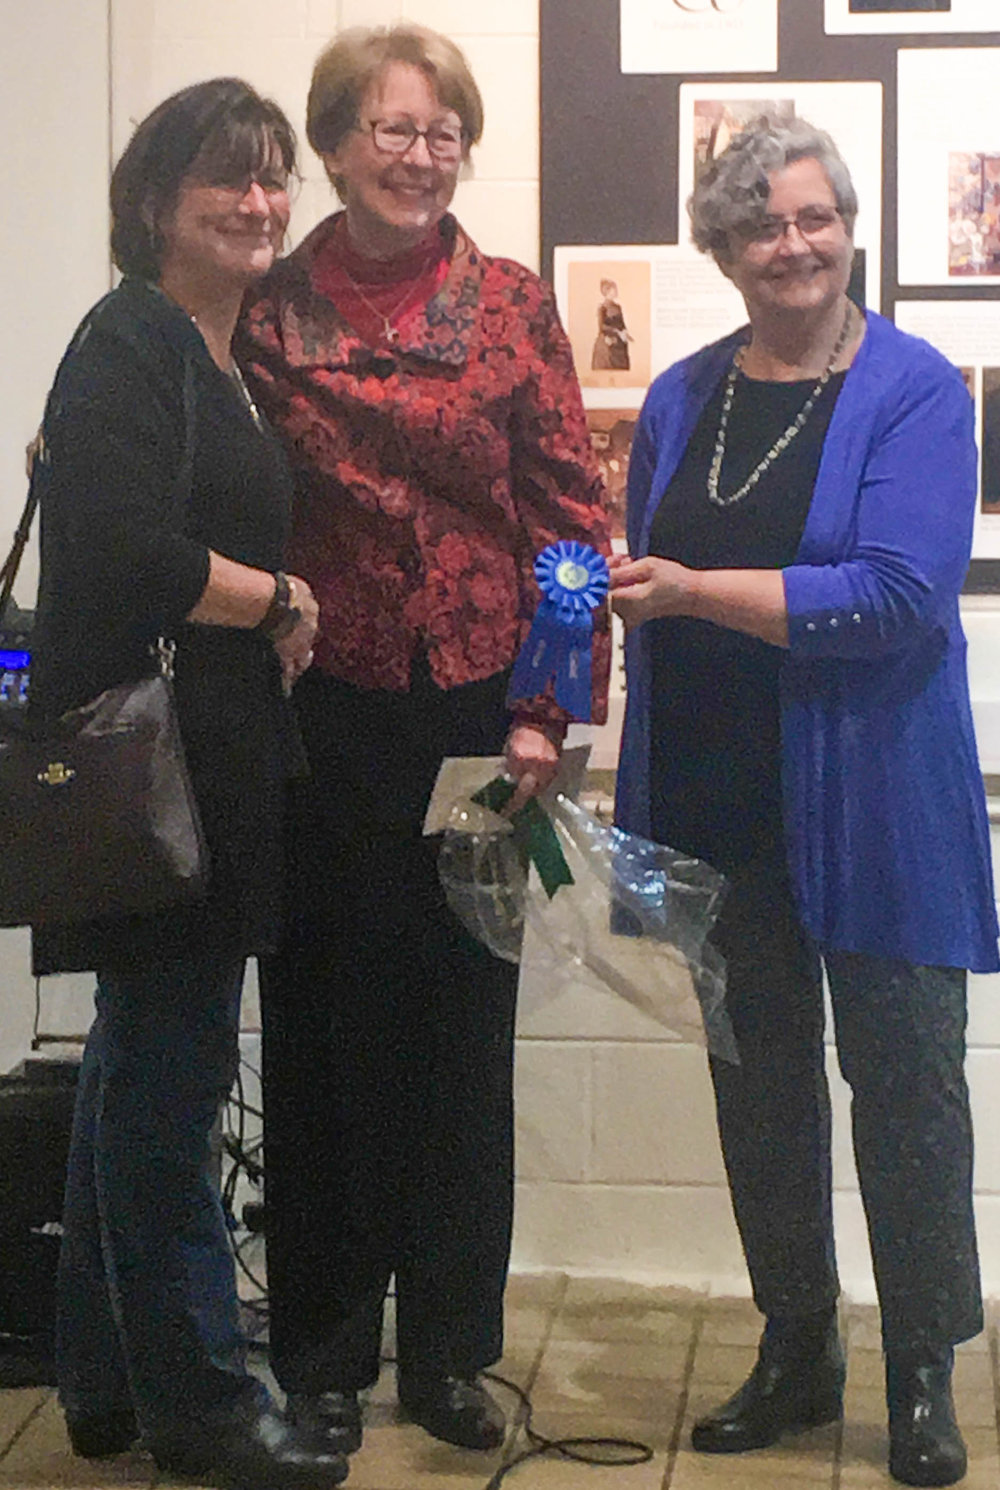 Beth Brown, Kathleen O'Connell, Joan Smykowski